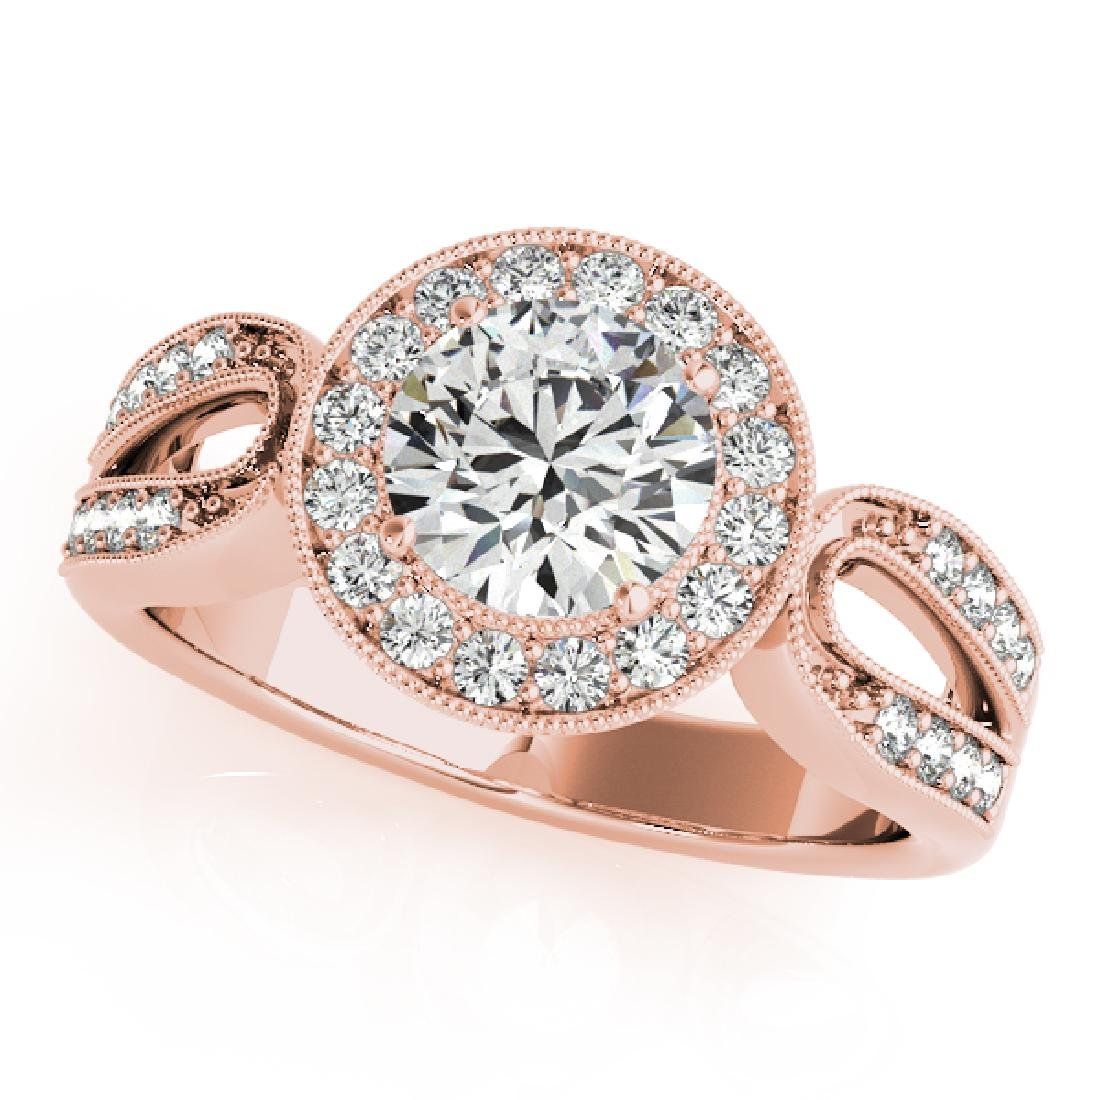 CERTIFIED 18K ROSE GOLD .92 CT G-H/VS-SI1 DIAMOND HALO